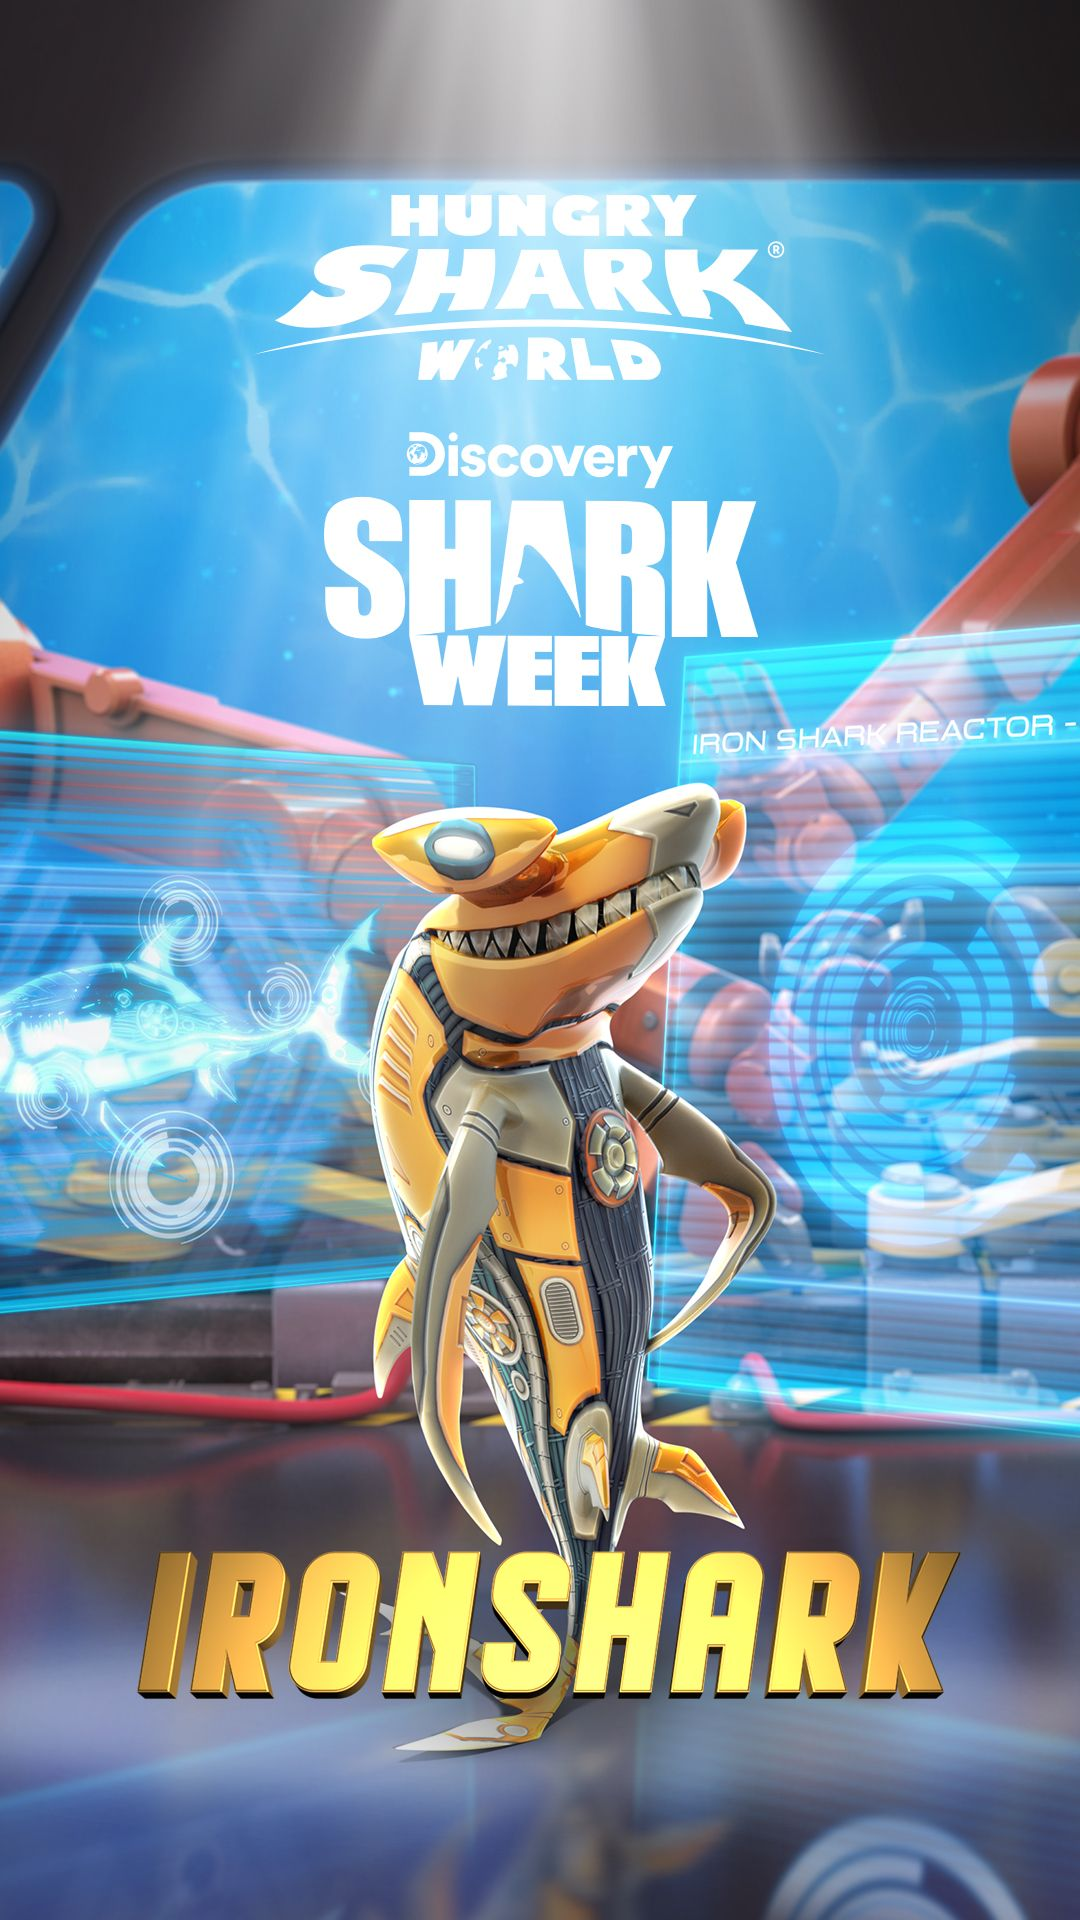 IRONSHARK Hammerhead skin is FREE FOR EVERYONE for a